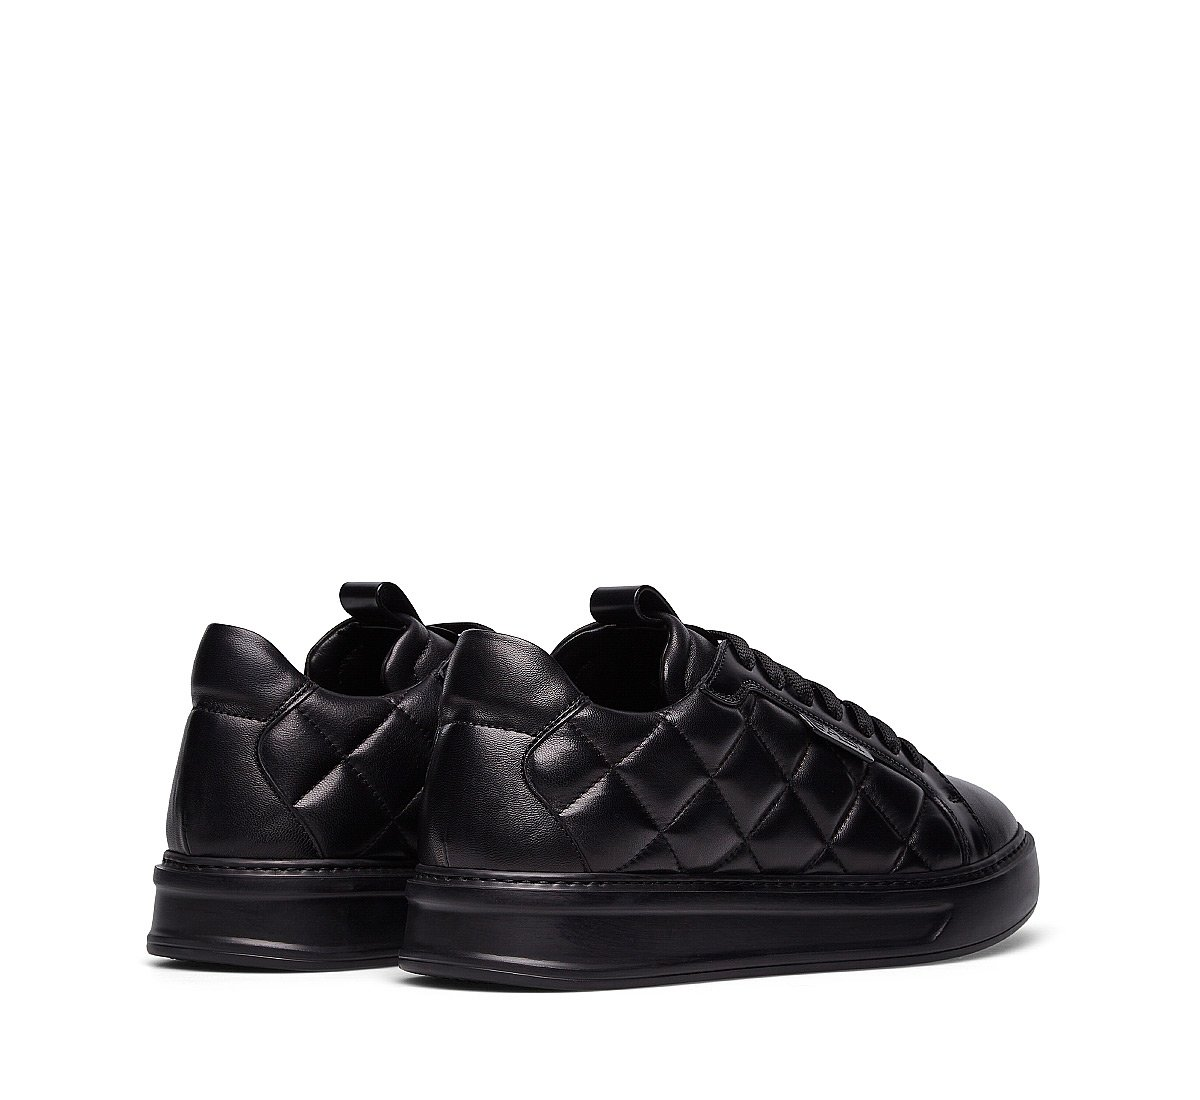 Nappa leather sneakers